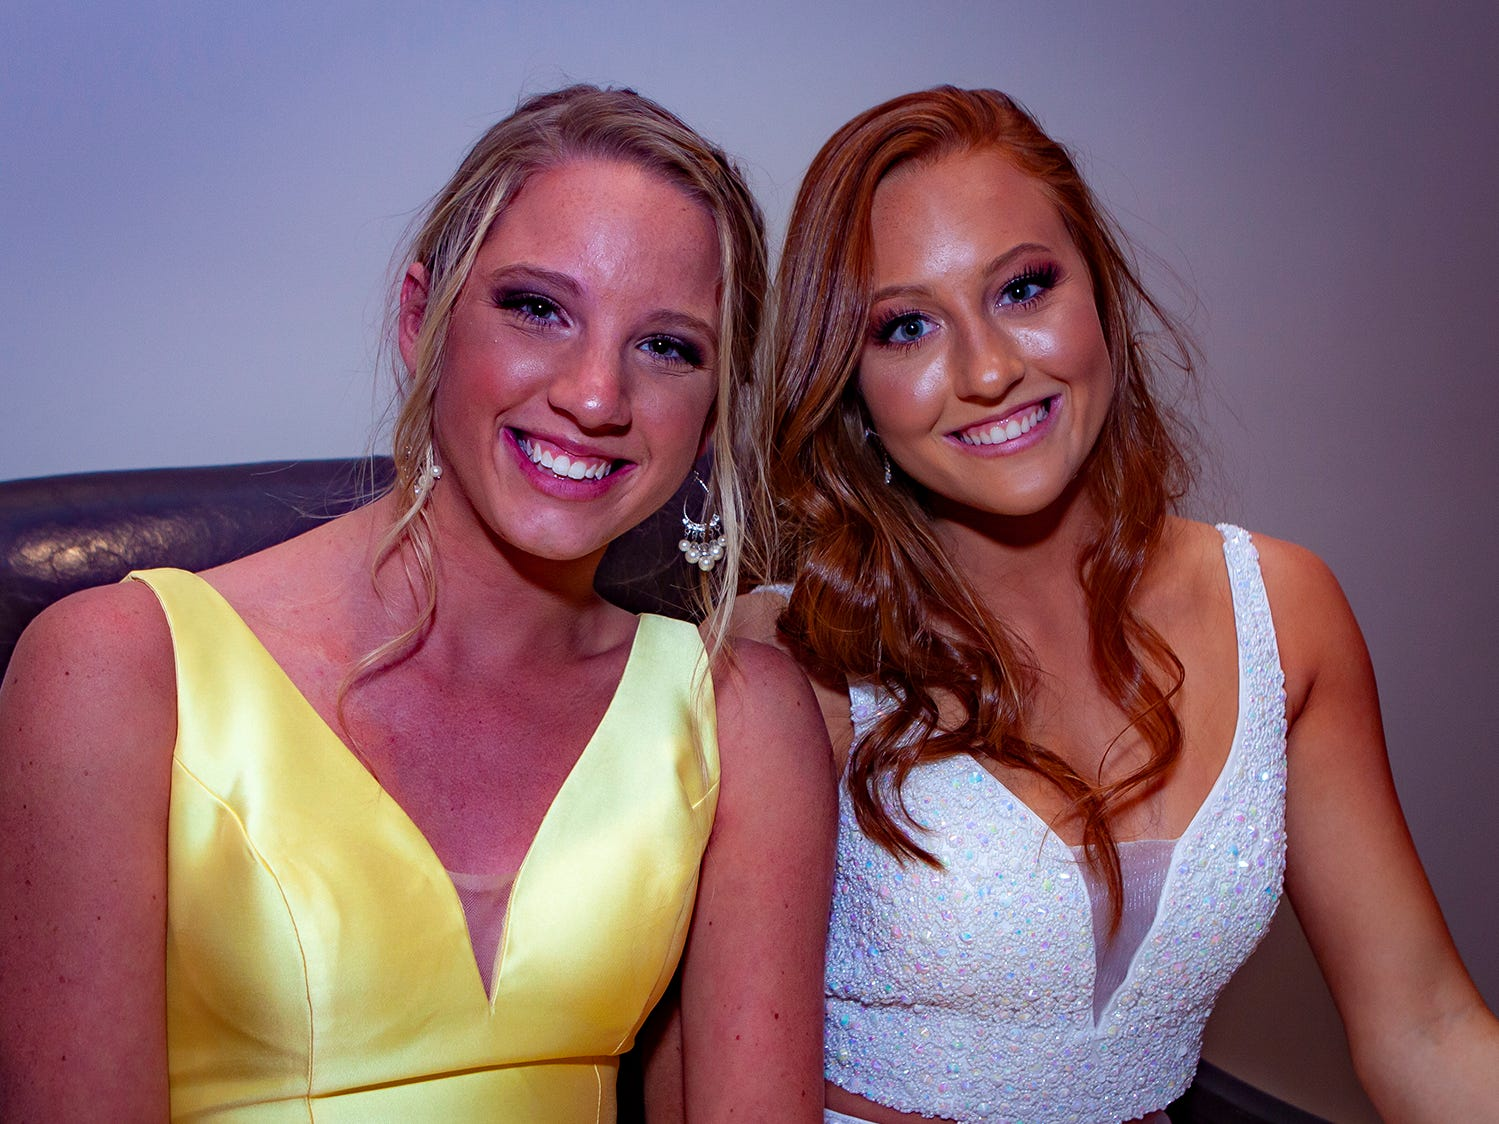 Annah Crego and Sydney Mikulon at Riverdale's prom, held Saturday, April 27, 2019 at MTSU's Student Union Building.